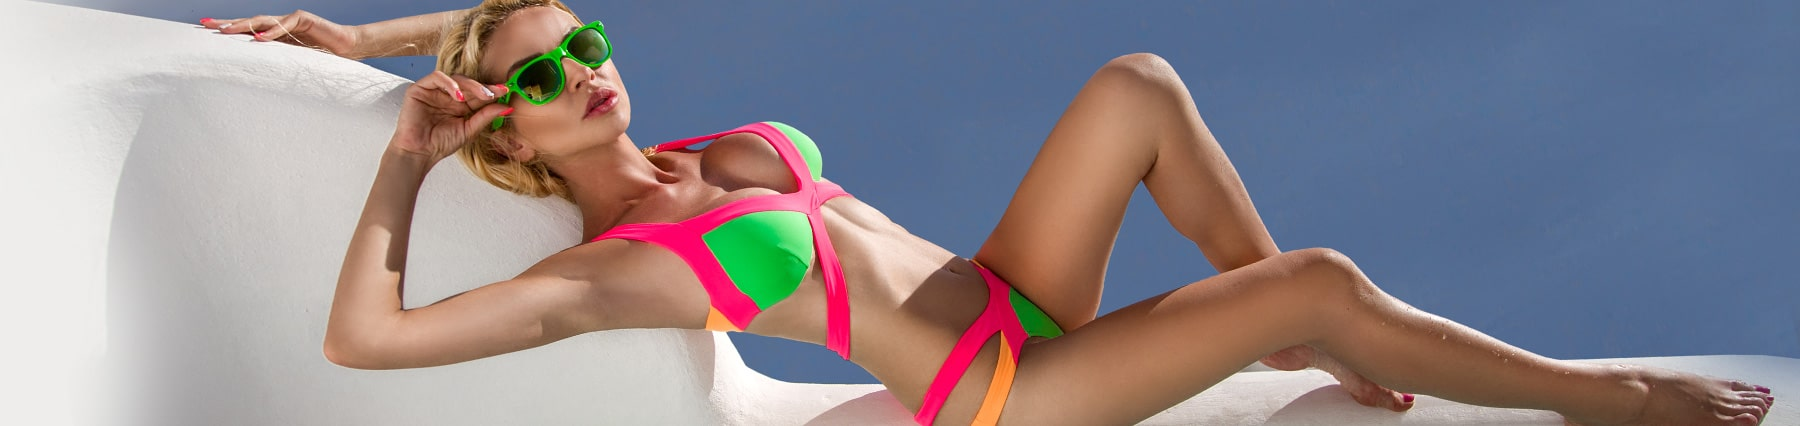 Update! A New Store and a New Look! - The Tanning Shop